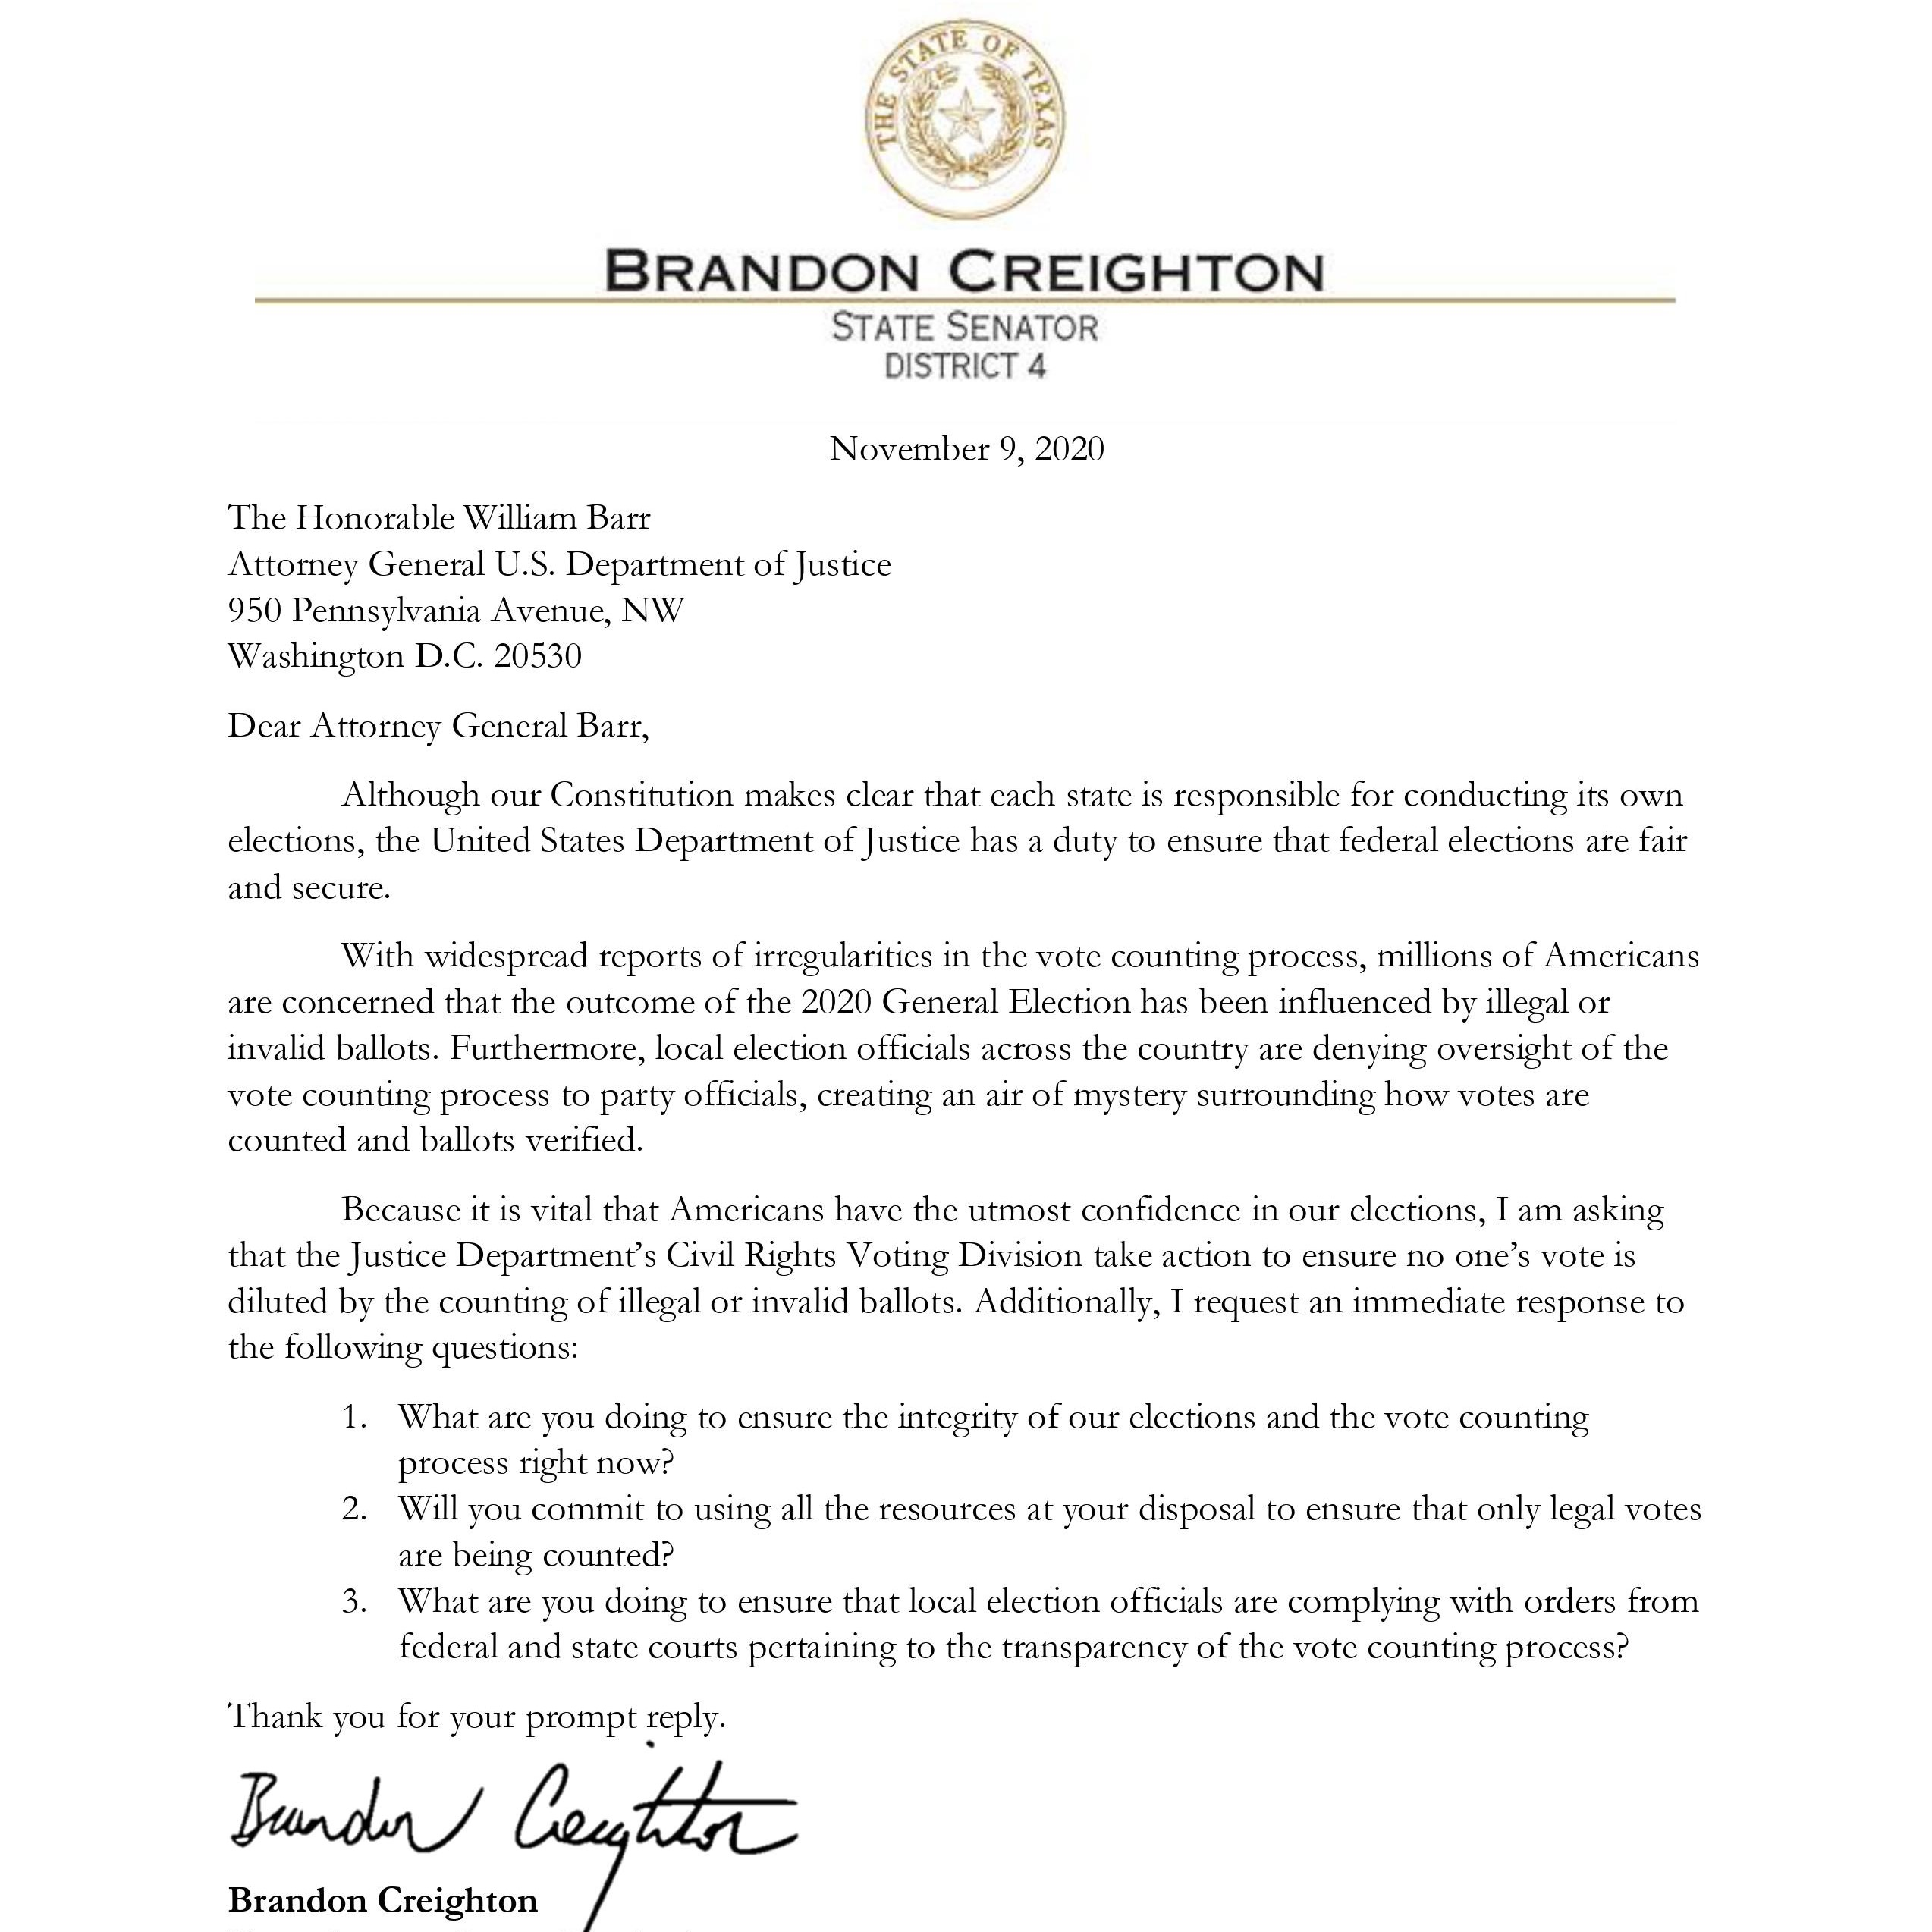 Senator Creighton's letter to Attorney General Barr